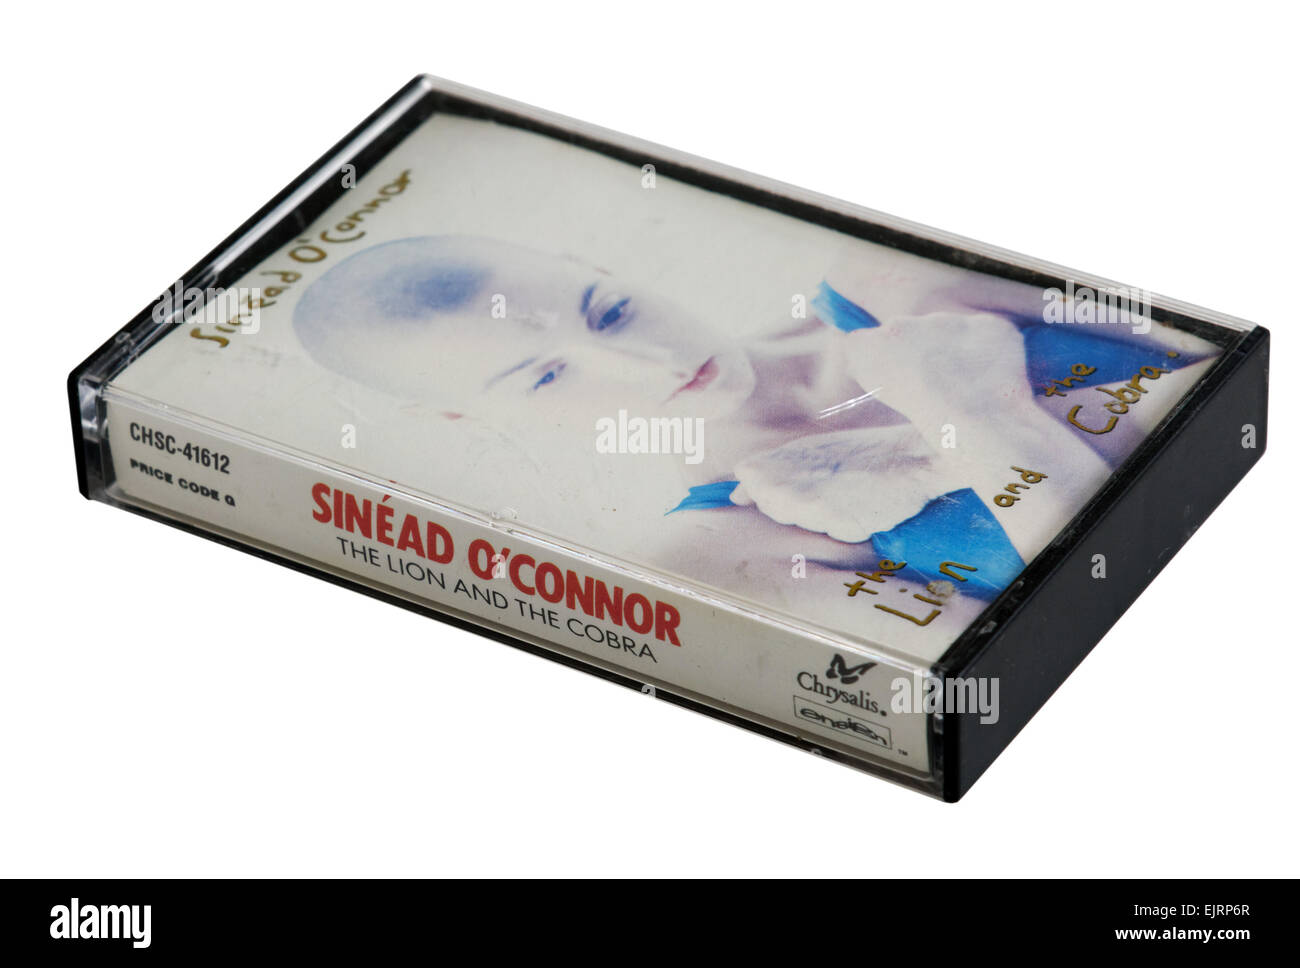 Sinead O'Connor album The Lion and the Cobra on cassette tape - Stock Image